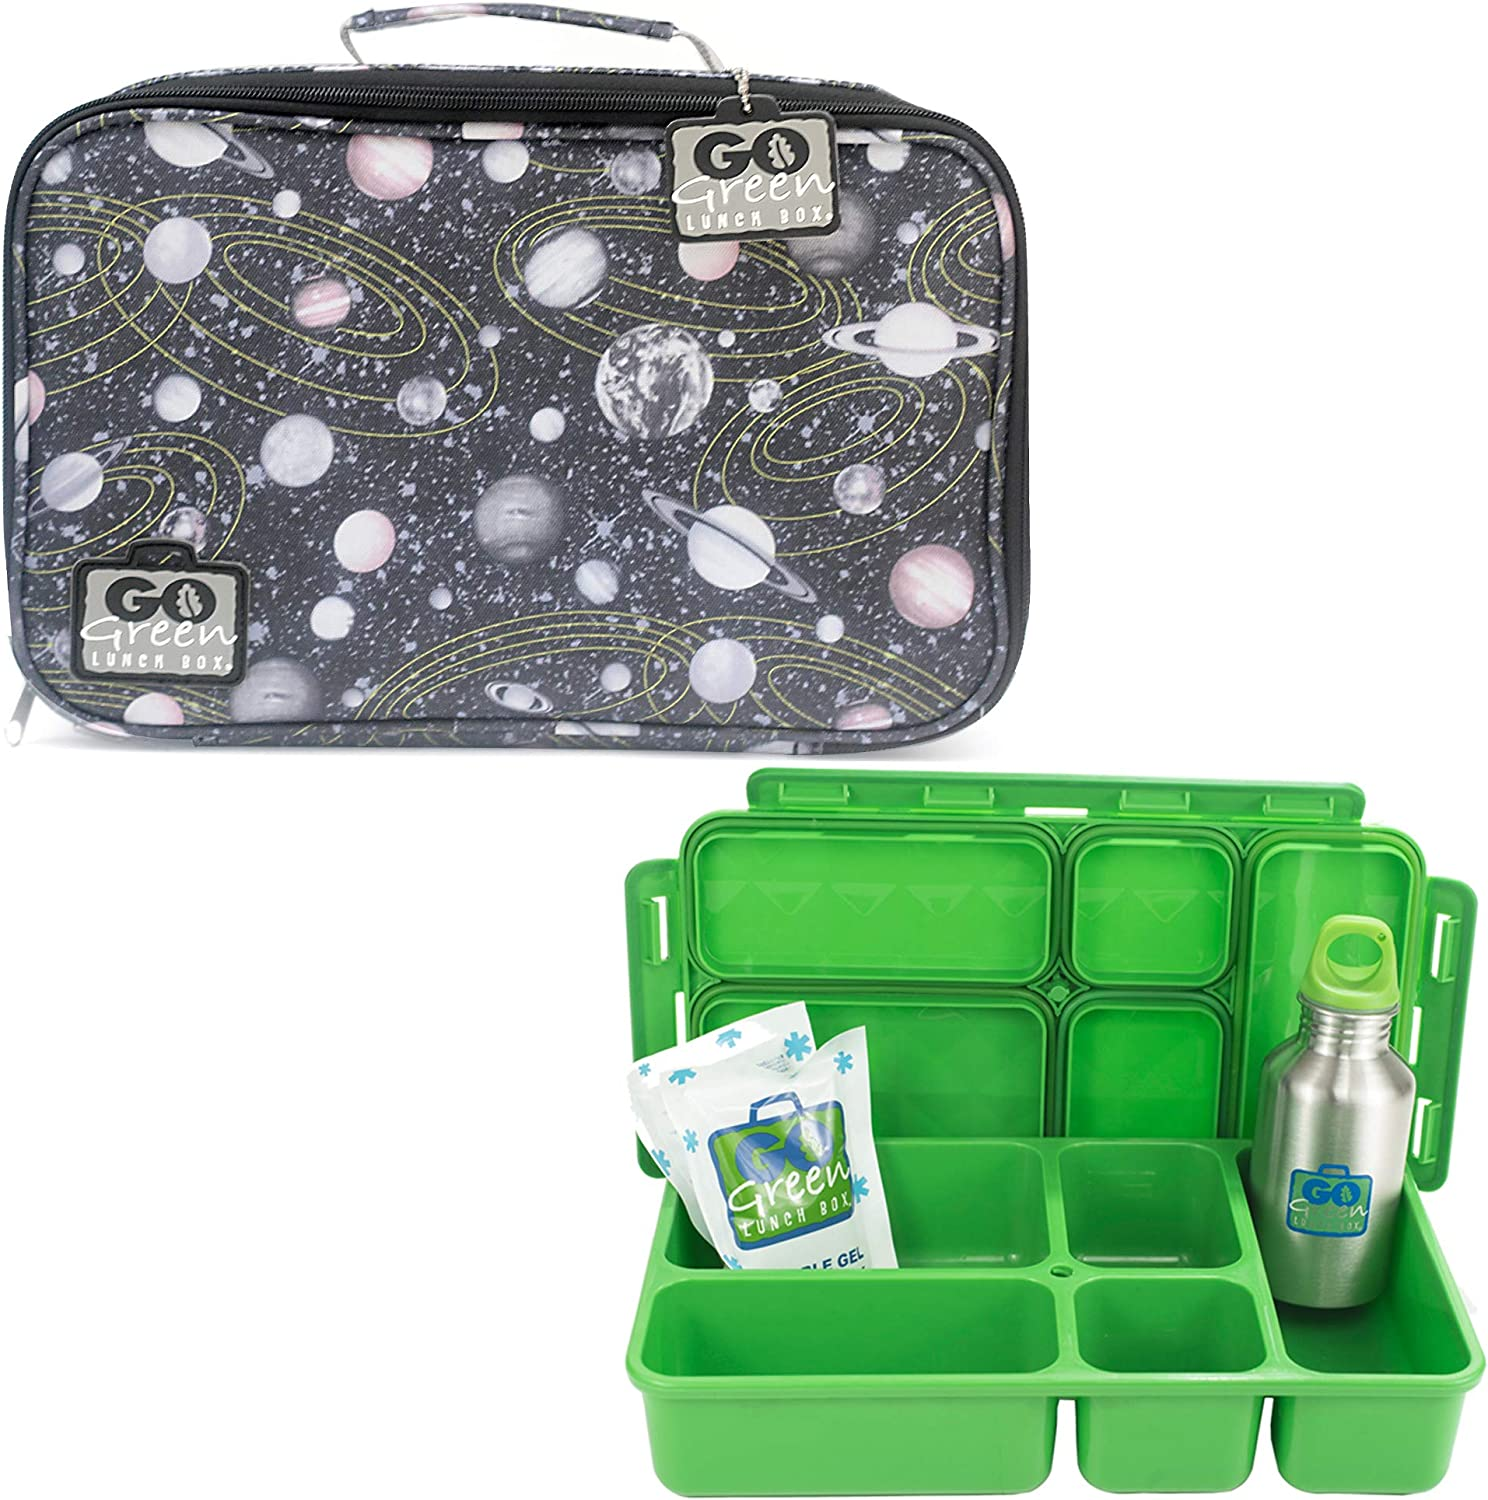 Go Green Lunch Box Set • 5 Compartment Leak-Proof Lunch Box • Insulated Carrying Bag • Beverage Bottle • Gel Freezer Pack (Spaced Out)